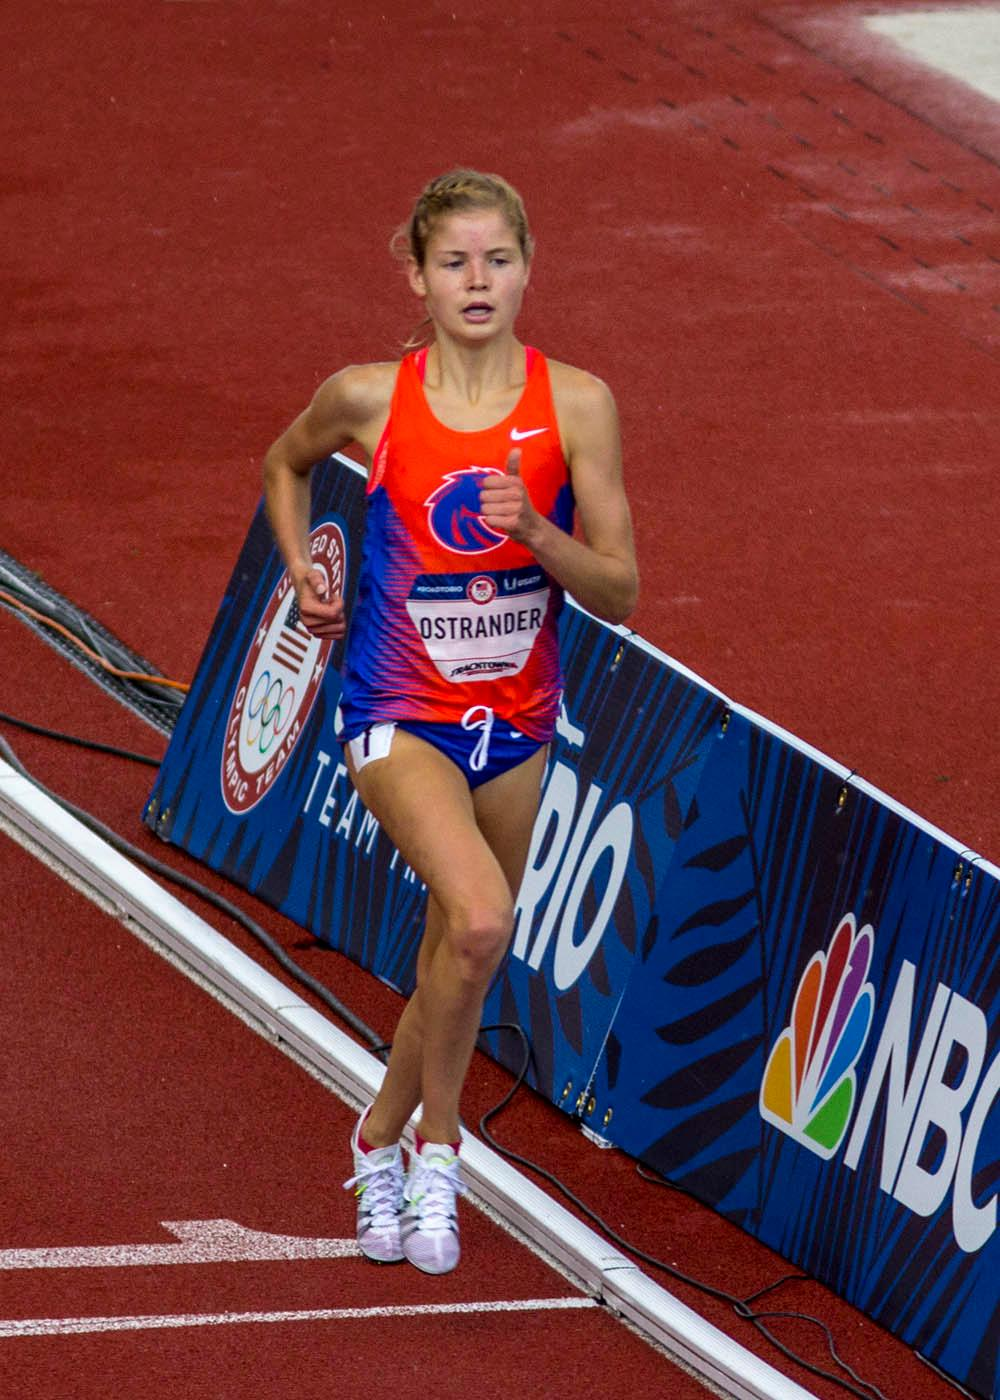 Boise State�s Allie Ostrander races in the Women�s 5000m Run final. Ostrander finished eighth with a time of 15:25.74. Day 10 of the U.S. Track and Field Trials concluded Sunday at Hayward Field in Eugene, Ore. The competition lasted July 1 through July 10. Photo by Amanda Butt